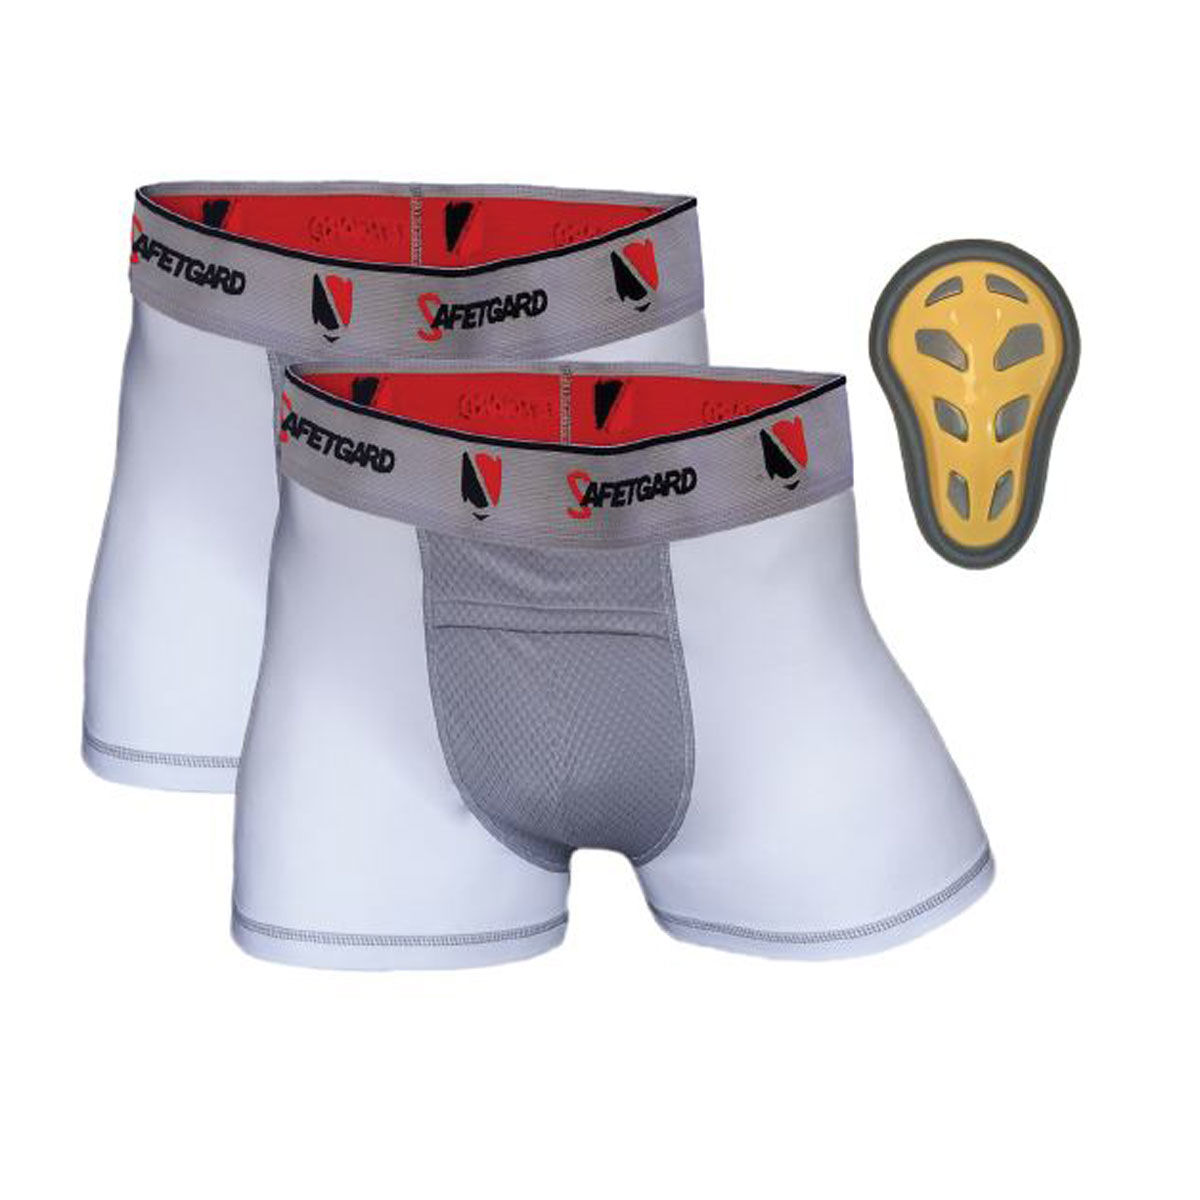 Safe T-Gard Pee Wee 2 Pack Boxer Briefs with Cage Cup